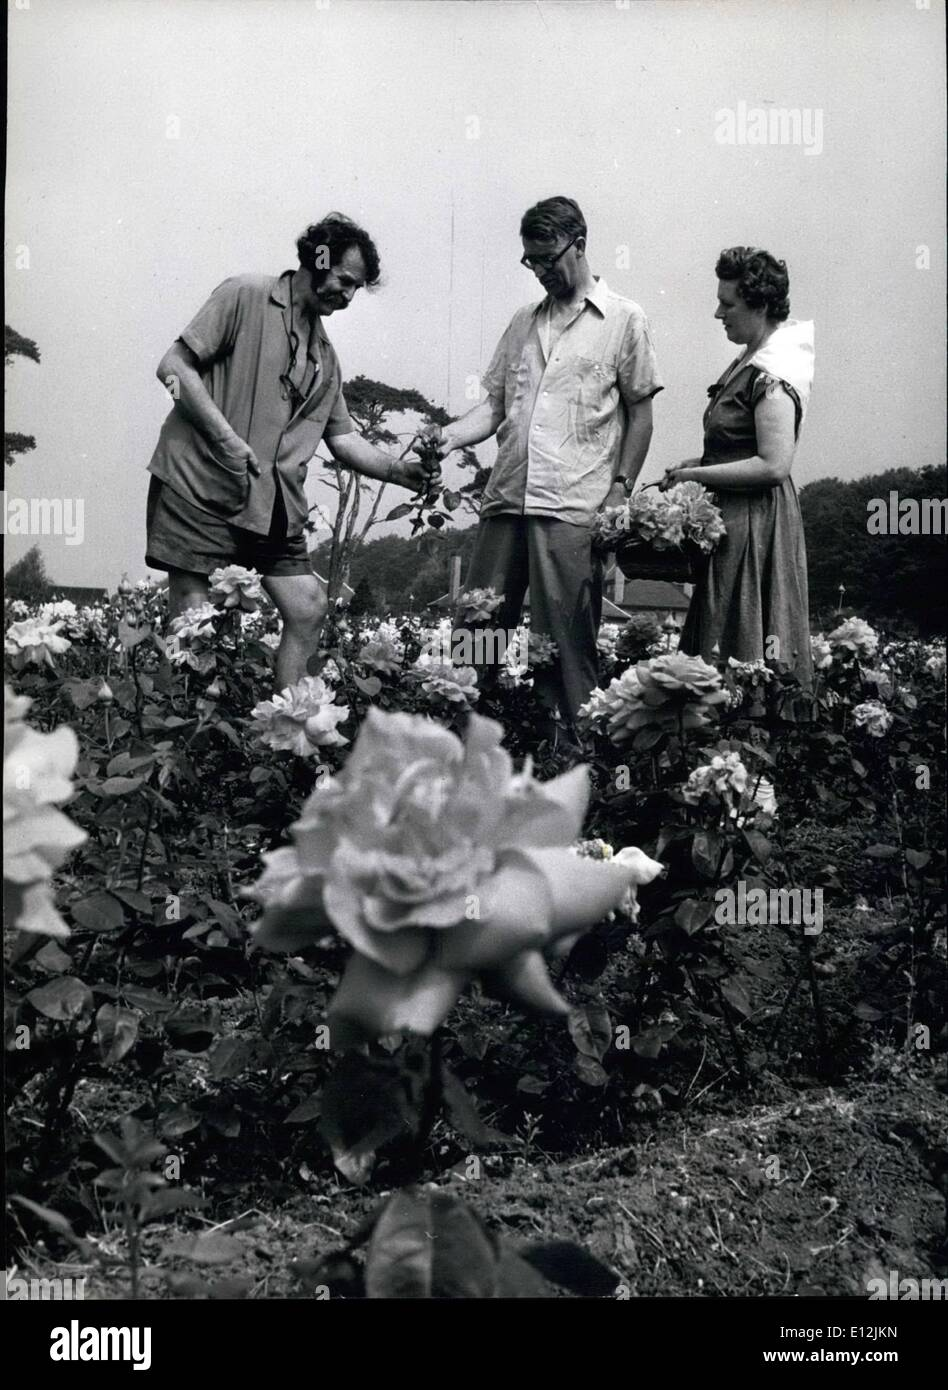 Feb. 24, 2012 - Subject under discussion- Roses: In one of the many fields of roses at Ruddington, Harry Wheatcroft and his brother Arthur and Arthur, and Arthur's wife,discuss the finer points of rose- growing. - Stock Image